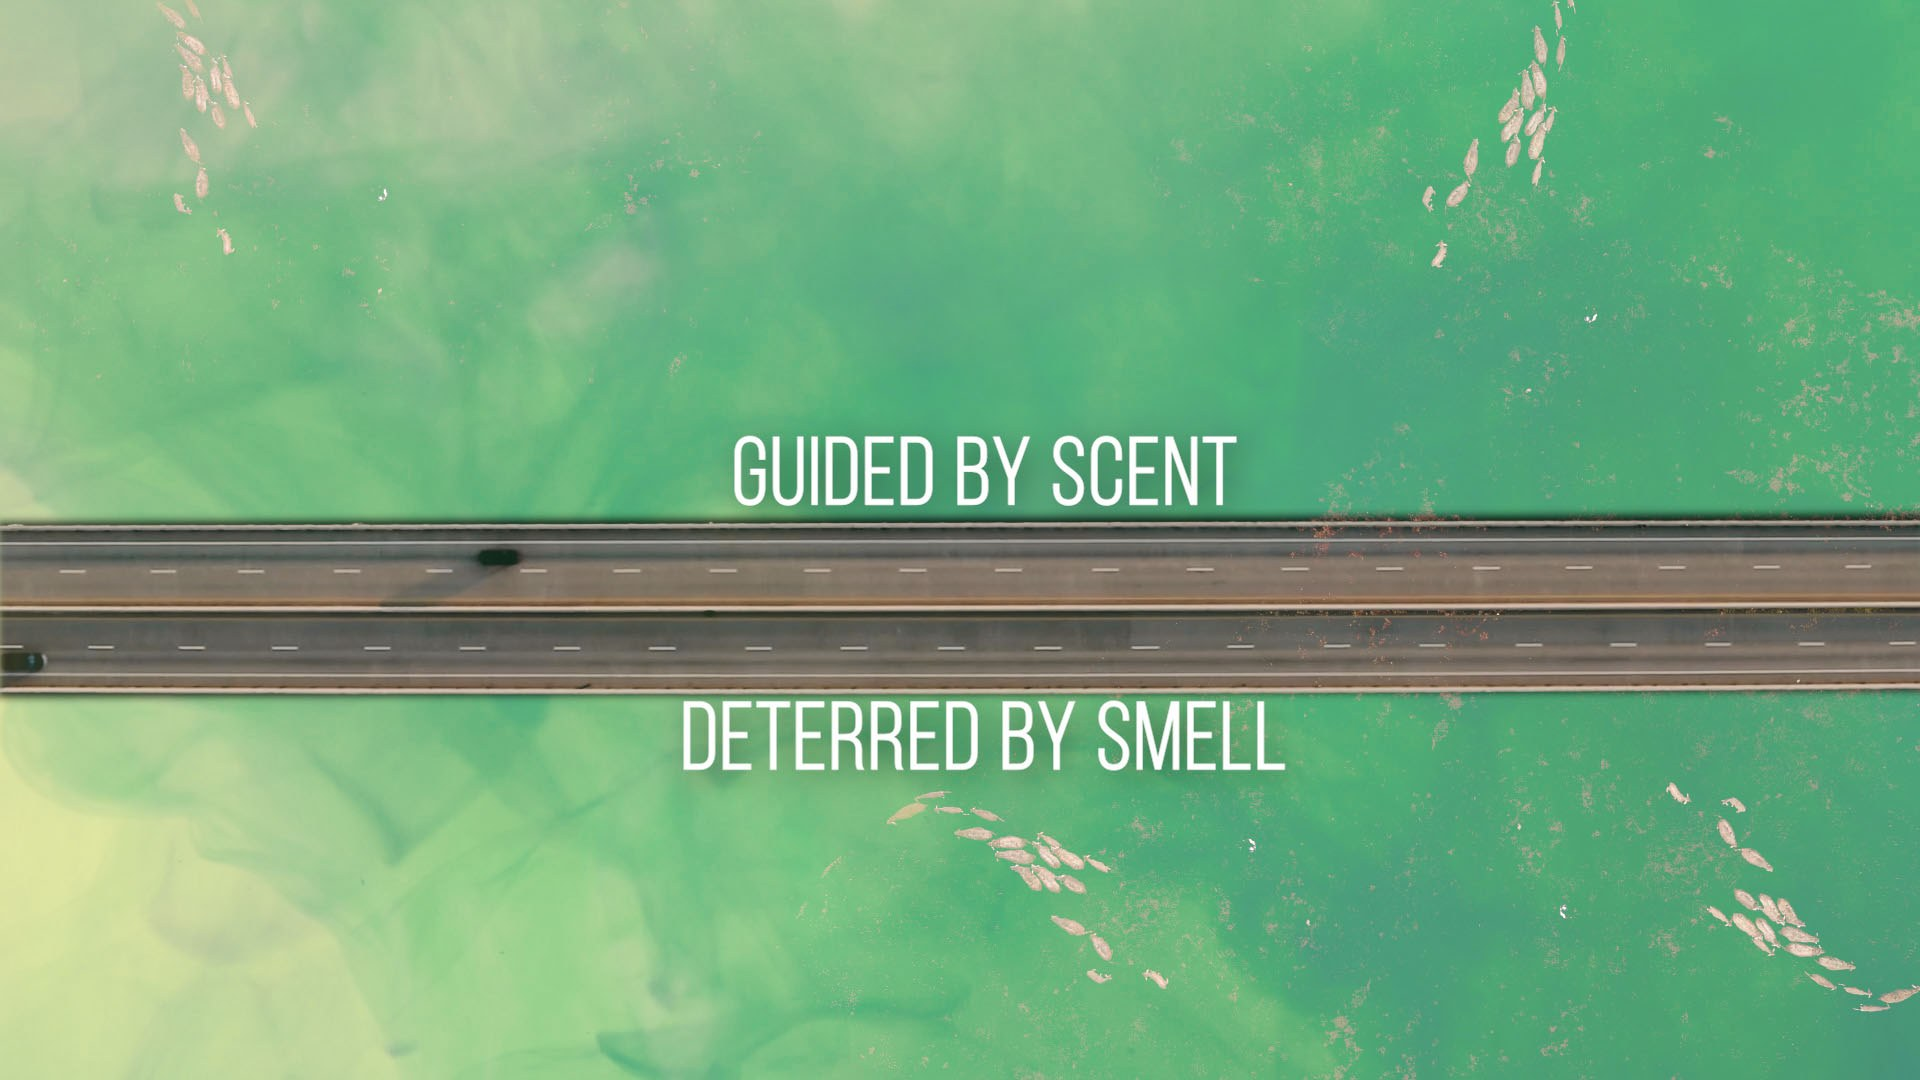 Guided by scent, deterred by smell